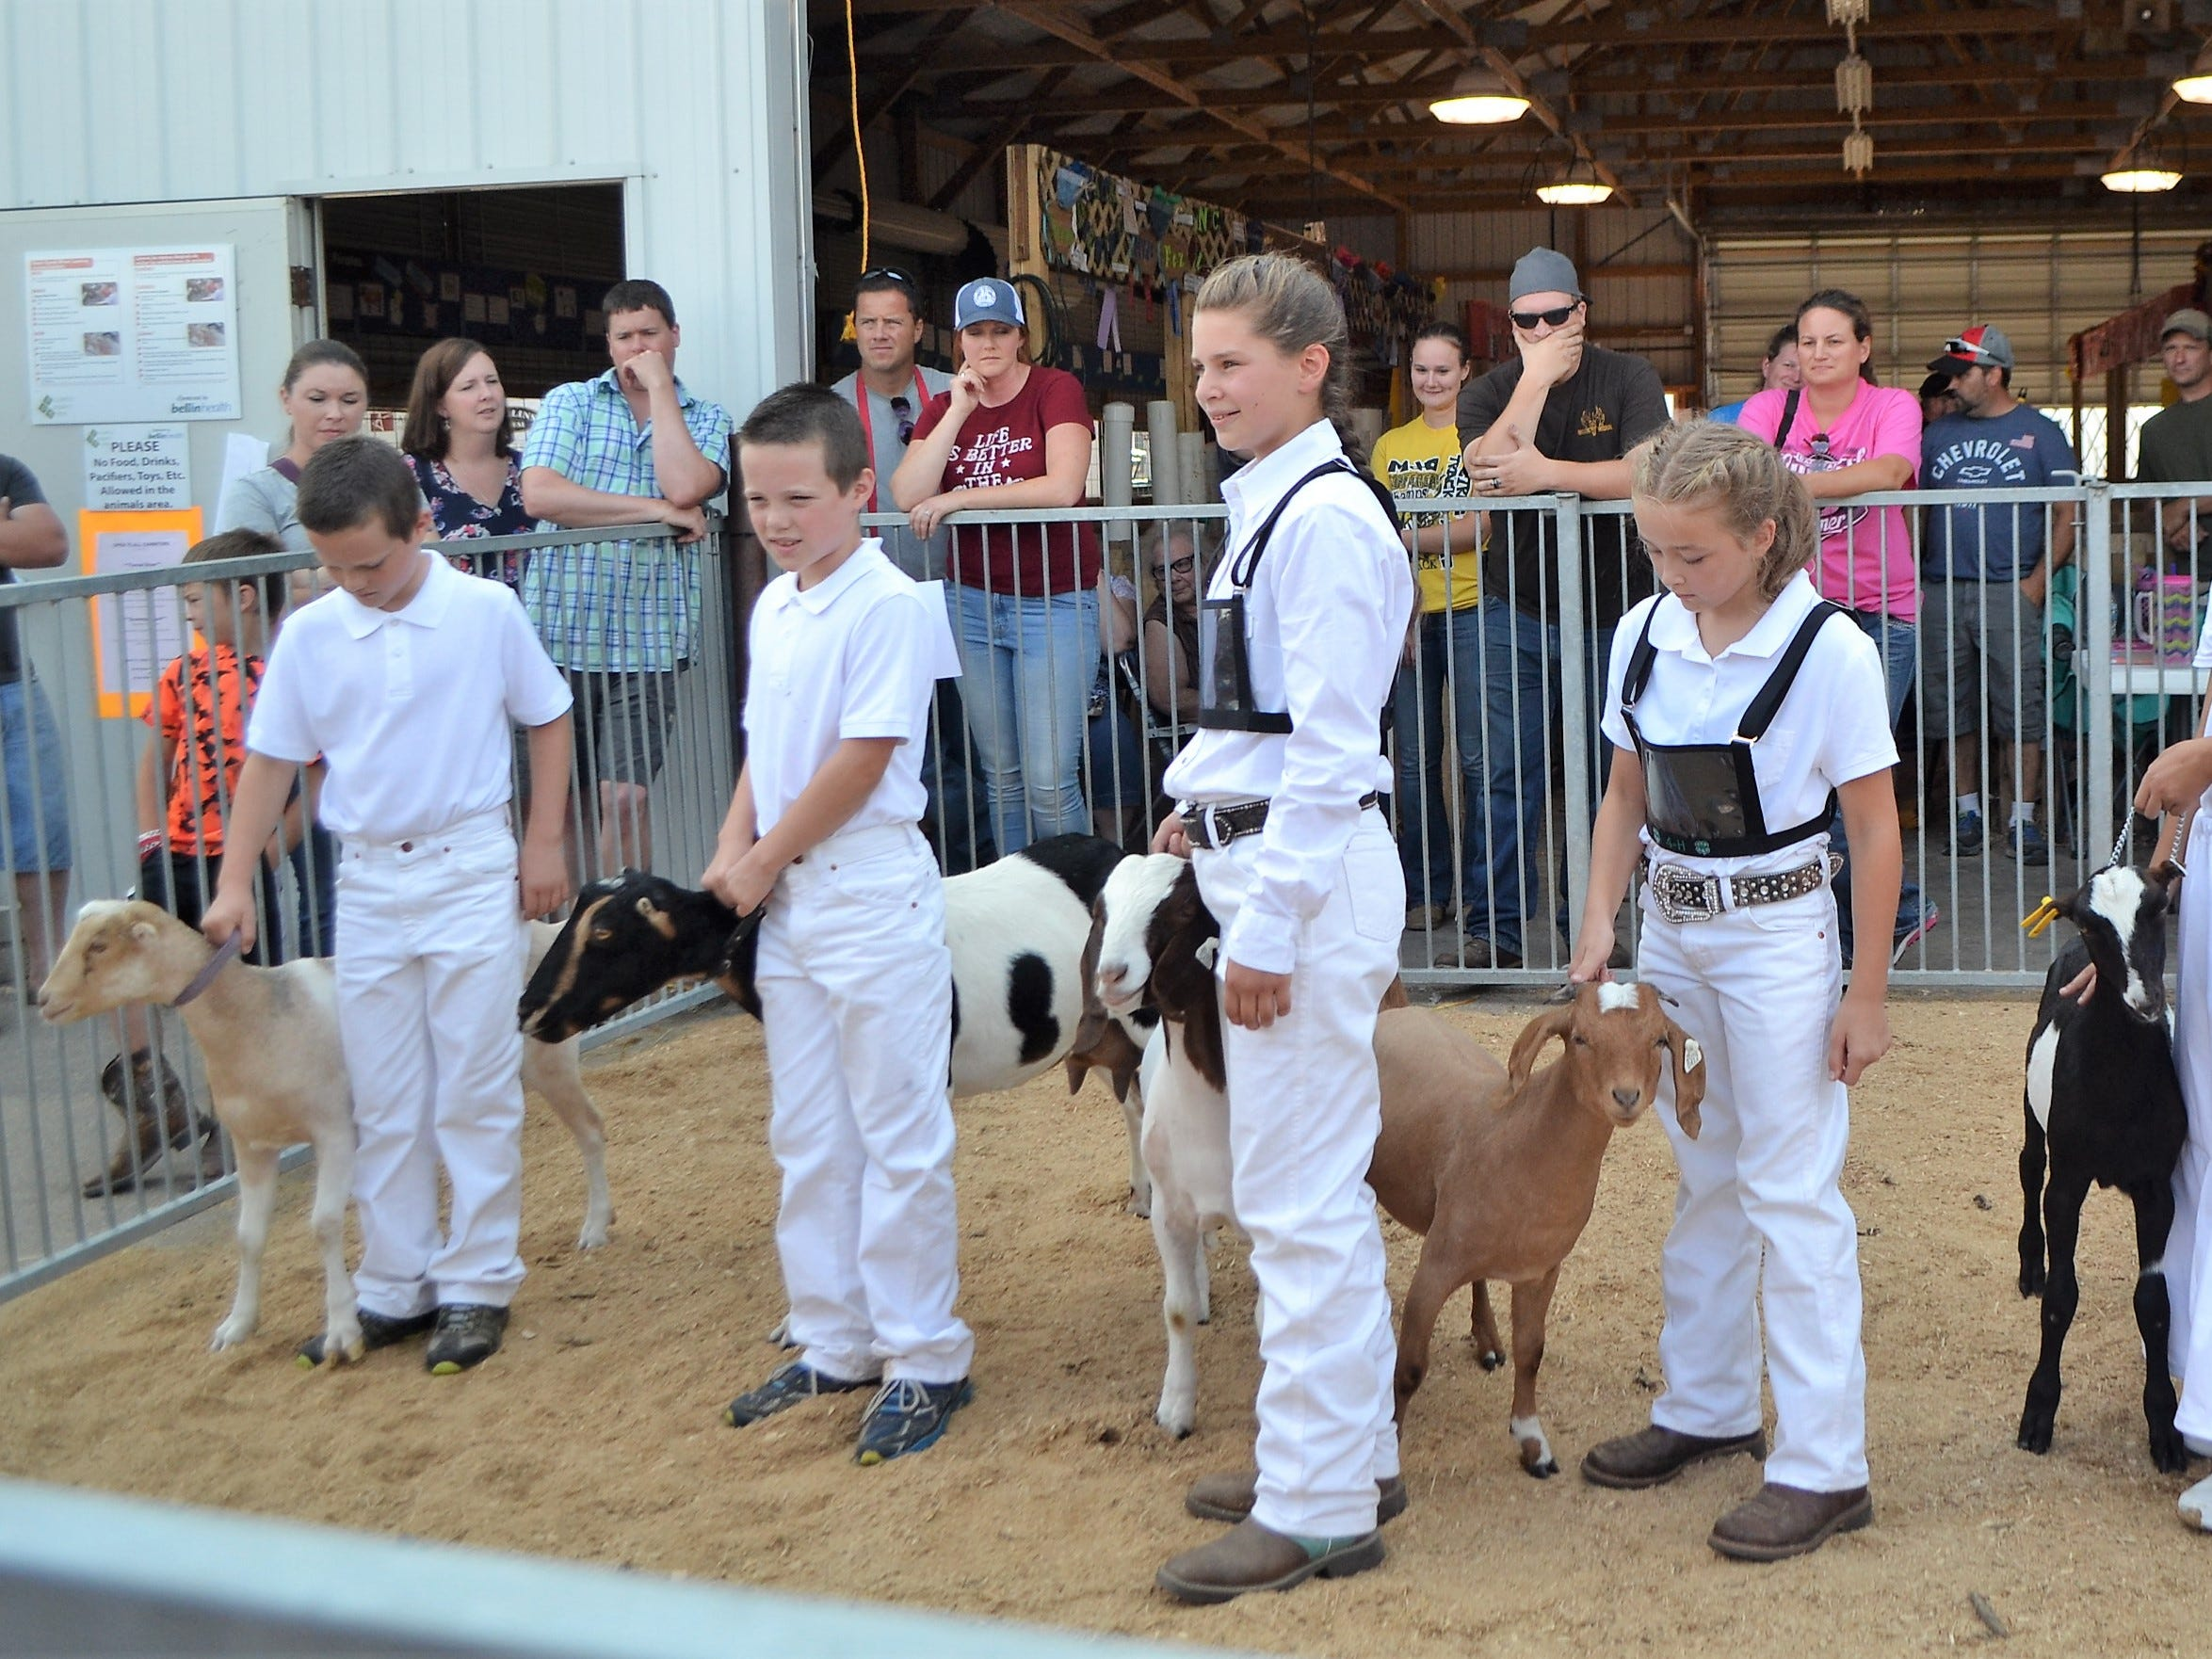 Participants lined up during the Junior Goat Judging at the Oconto County Fair on on Saturday, Aug. 18.